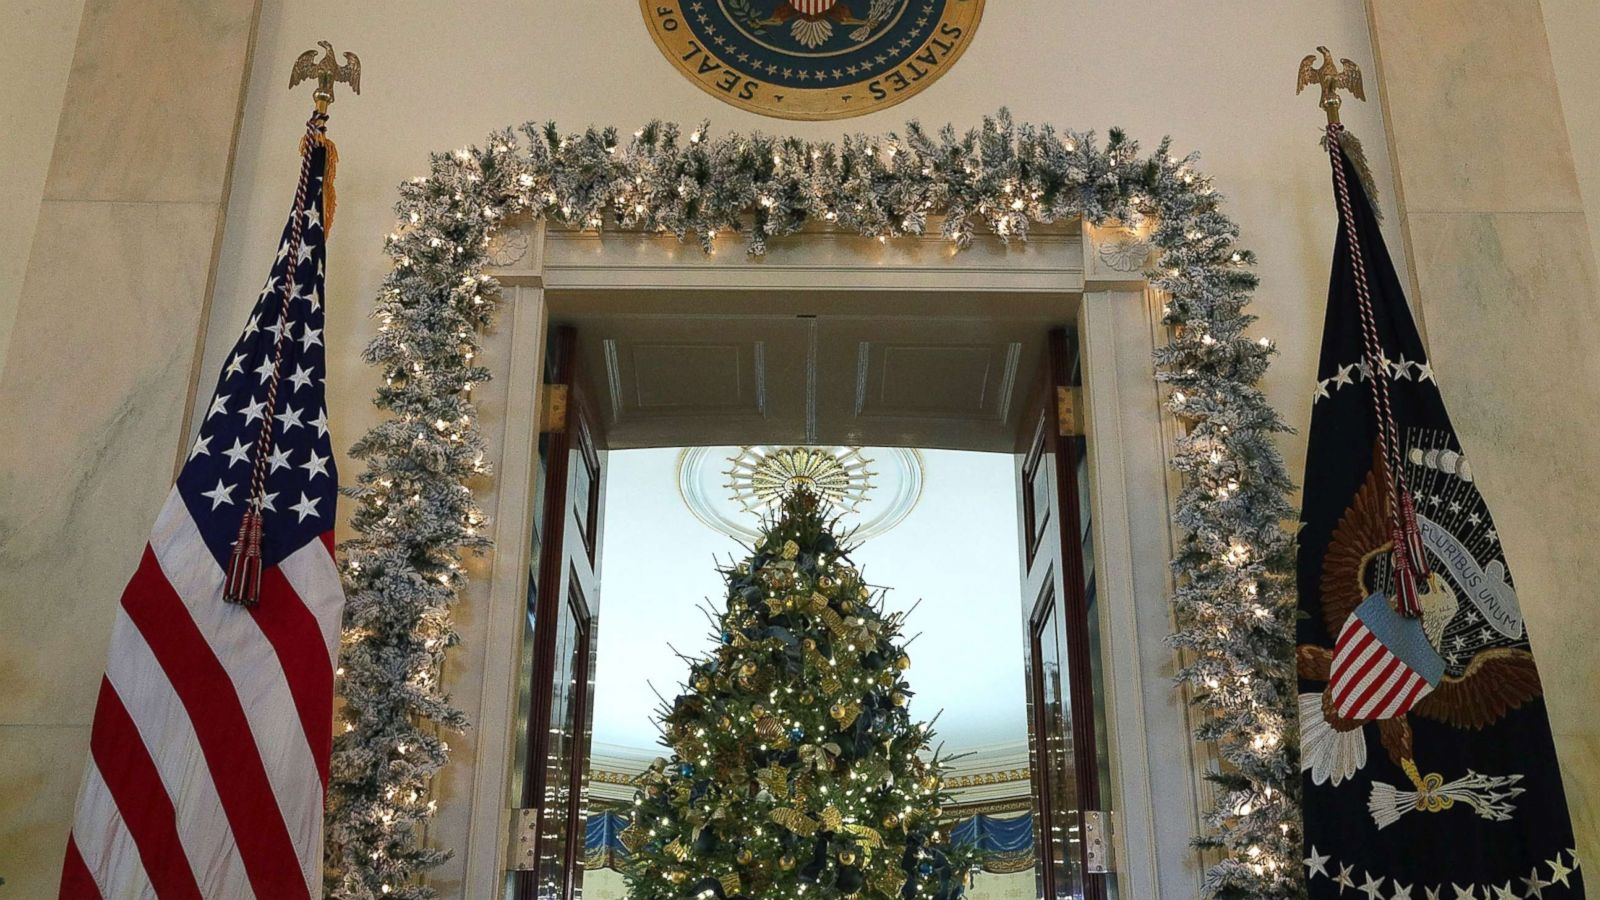 white house reveals 2017 christmas decorations abc news - White House Christmas Decorations